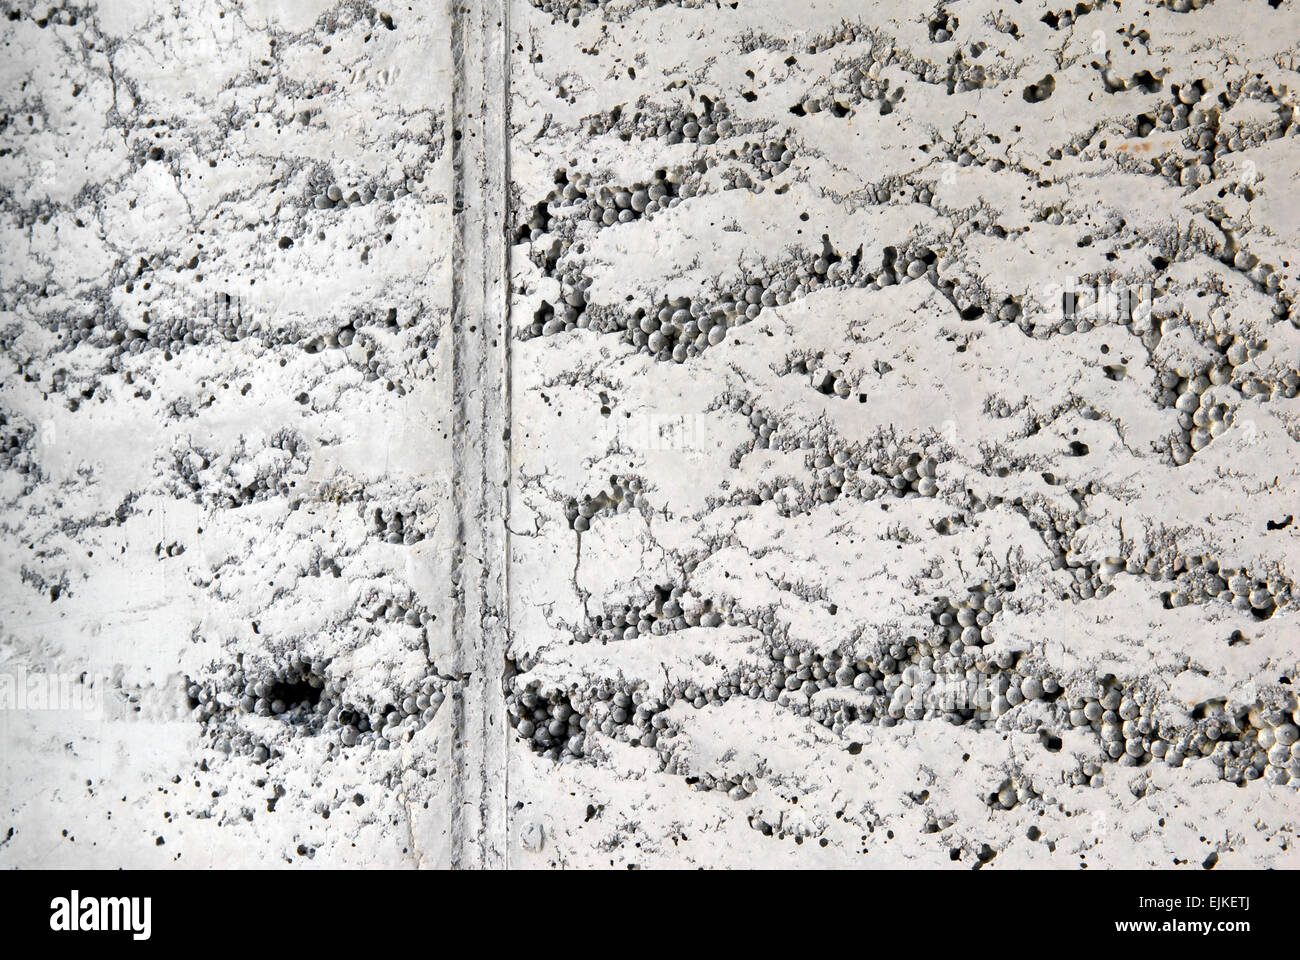 Detail of a concrete wall with structure - Stock Image